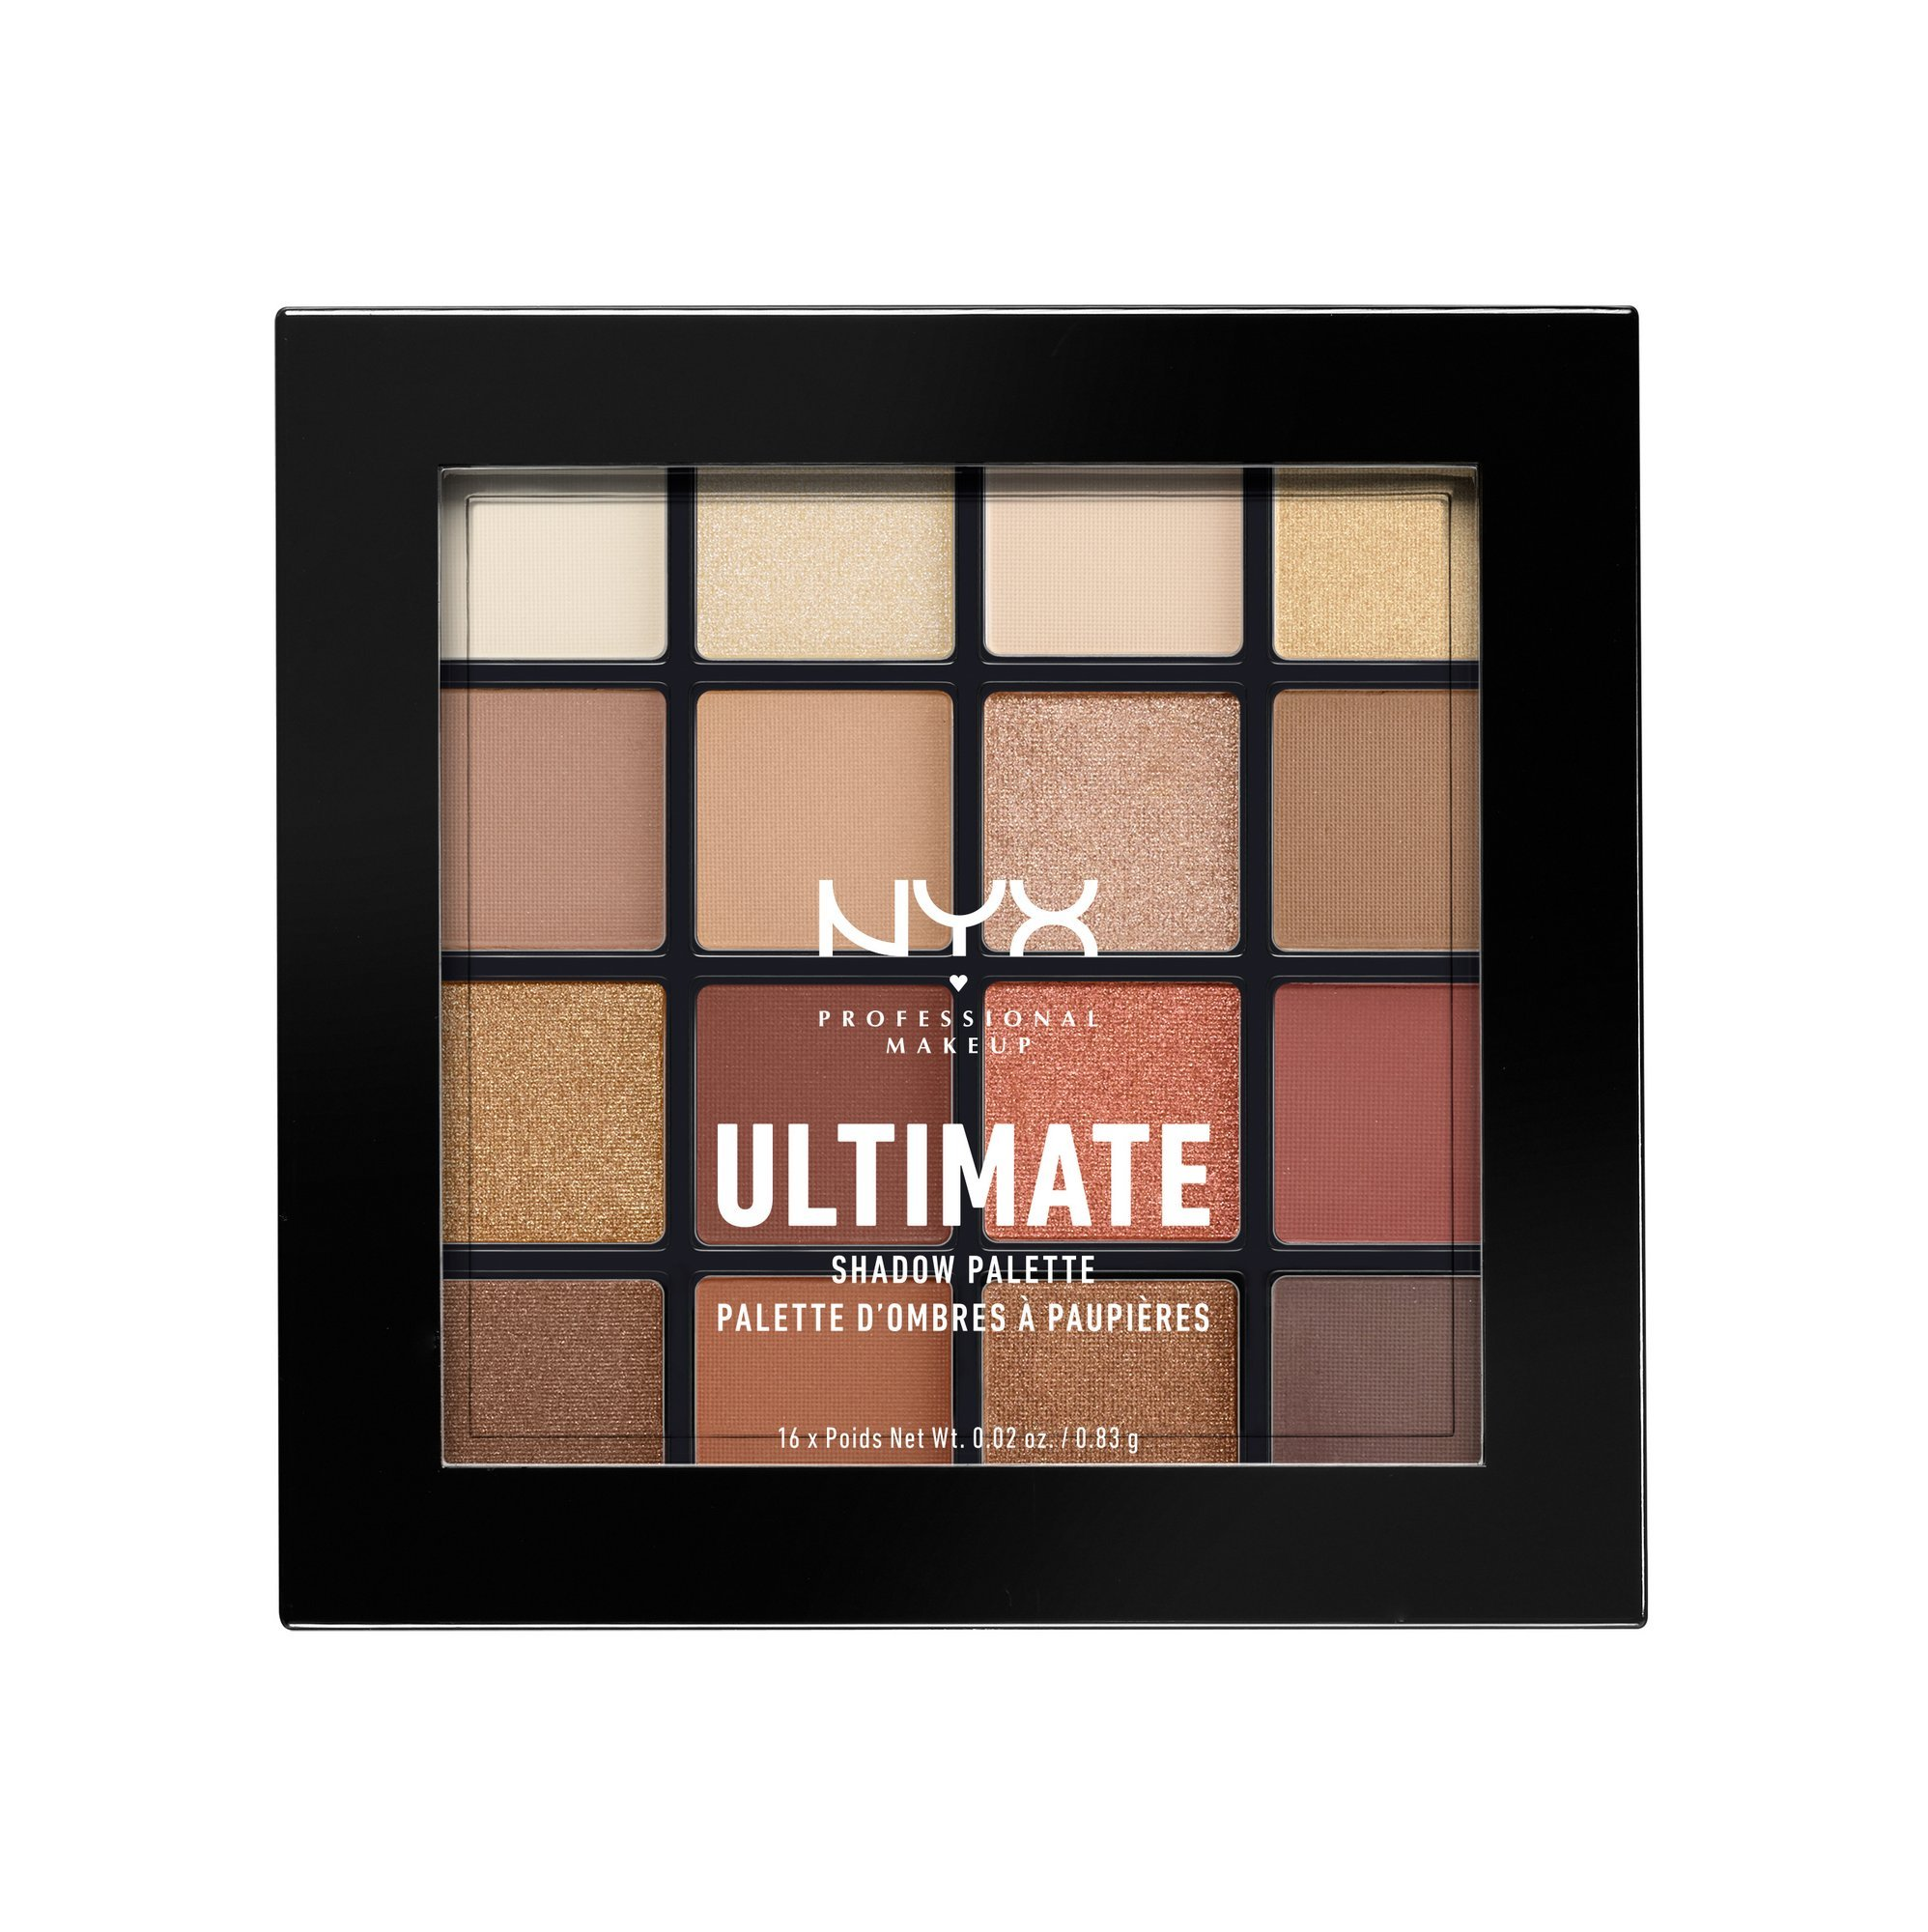 NYX PROFESSIONAL MAKEUP Ultimate Shadow Palette, Warm Neutrals, 0.02 oz/0.83 g by NYX